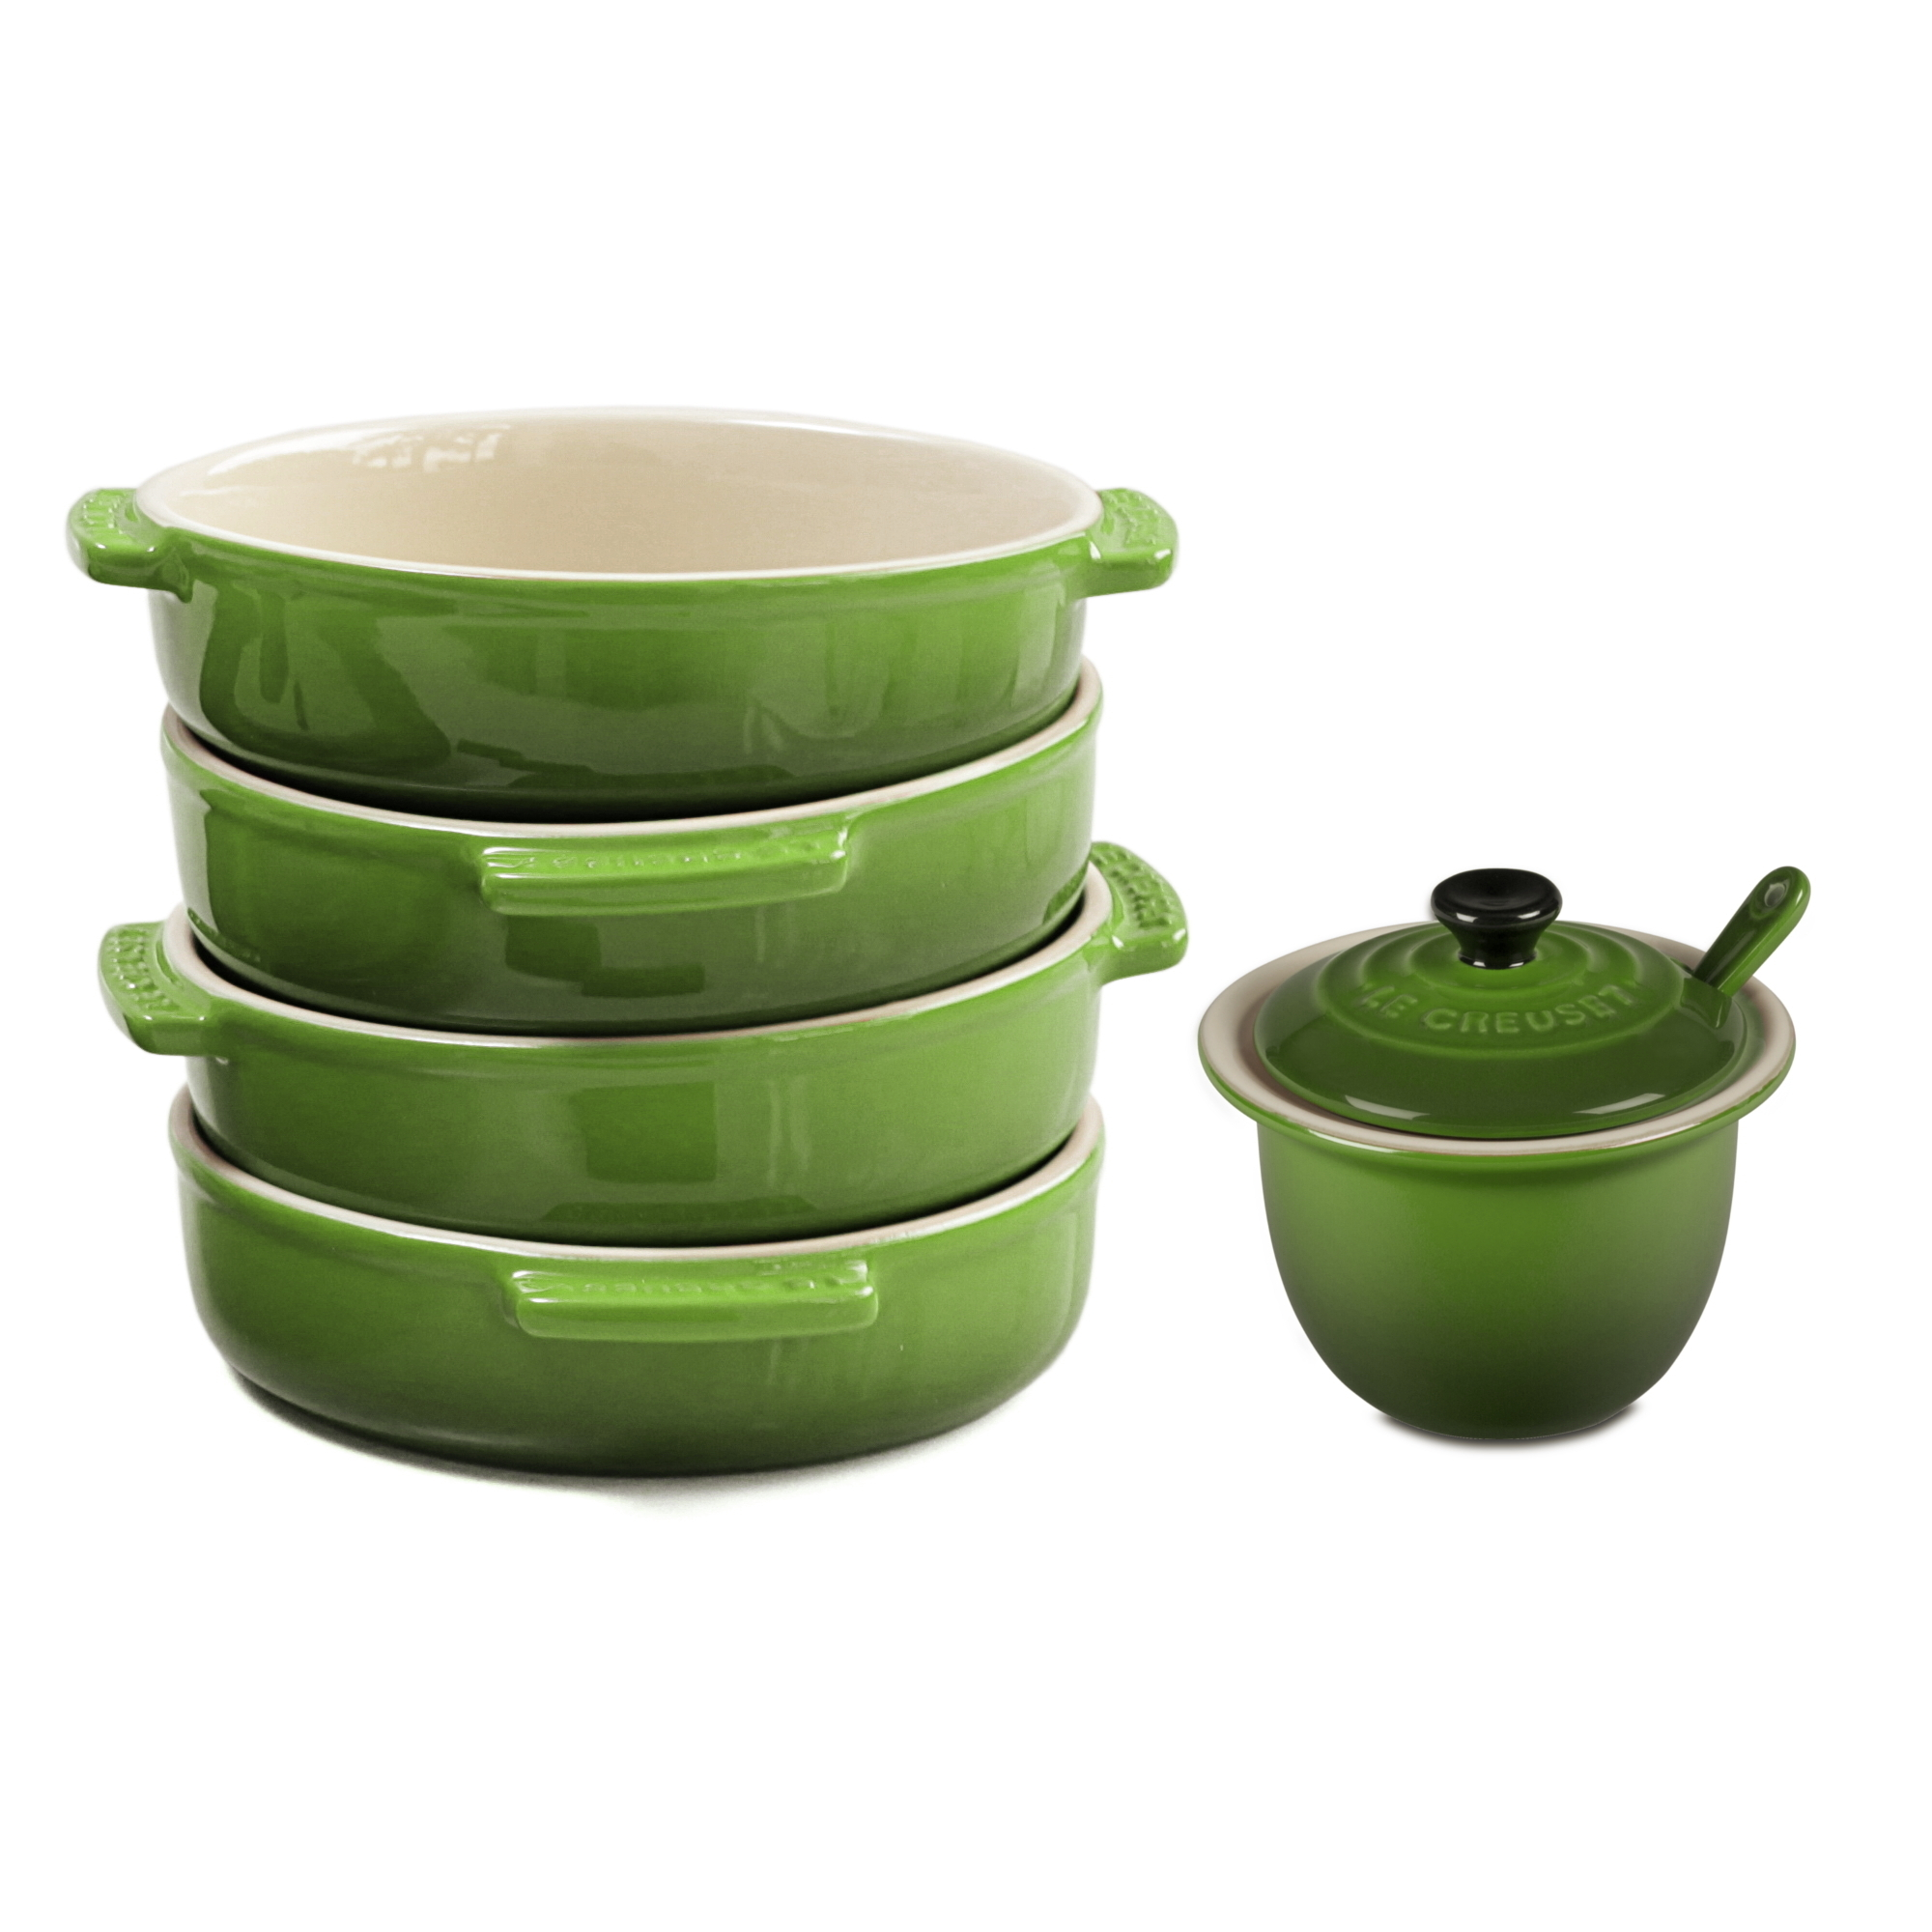 Le Creuset Palm Stoneware 17 Ounce Tapas Dish Set of 4 with Matching Stoneware 4 Ounce Condiment Pot